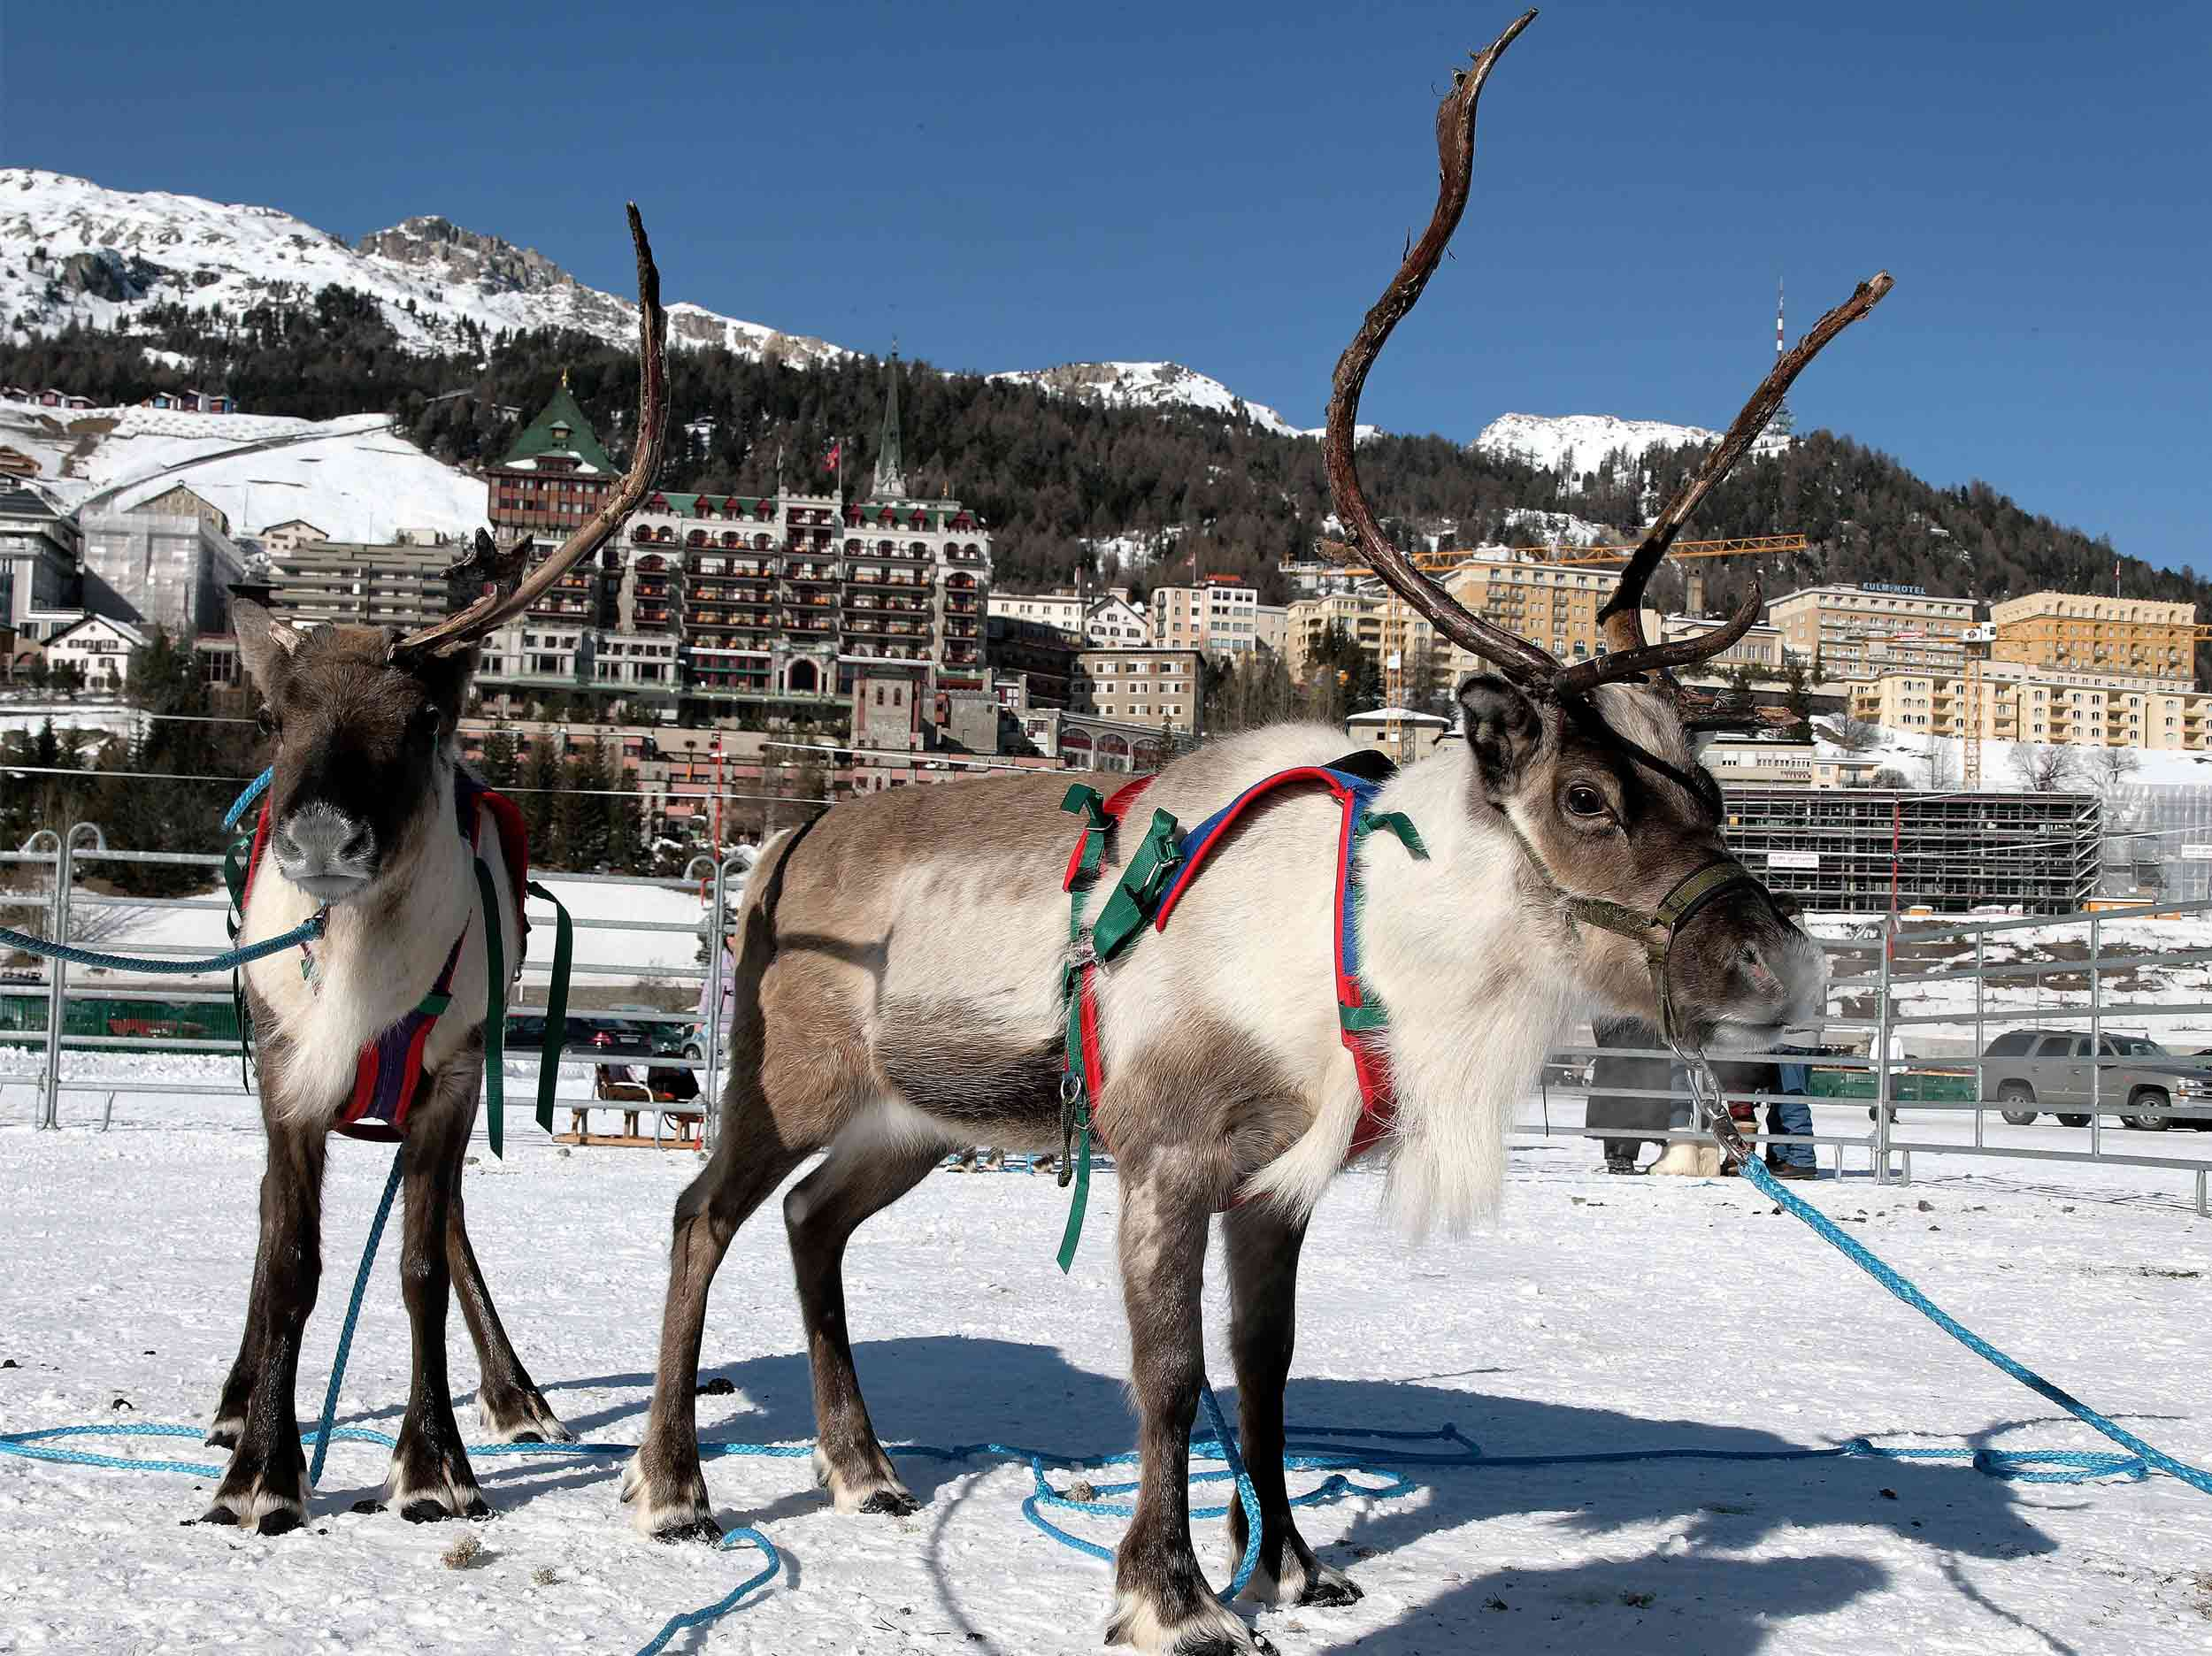 Credit Suisse – Skikjöring at White Turf in St. Moritz